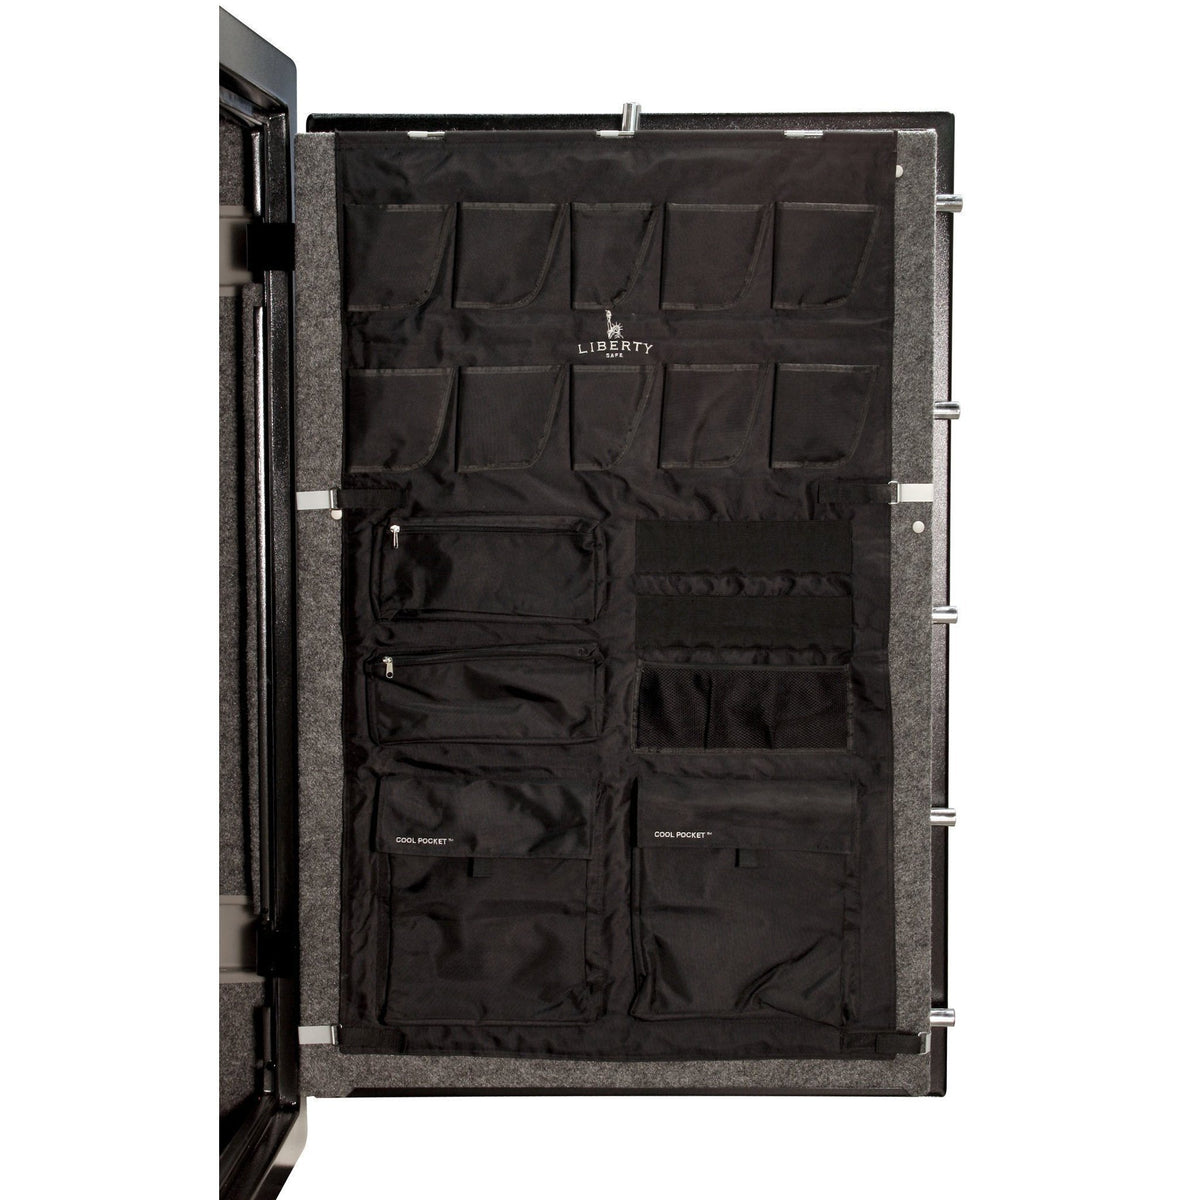 Accessory - Storage - Door Panel - 48-64 size safes